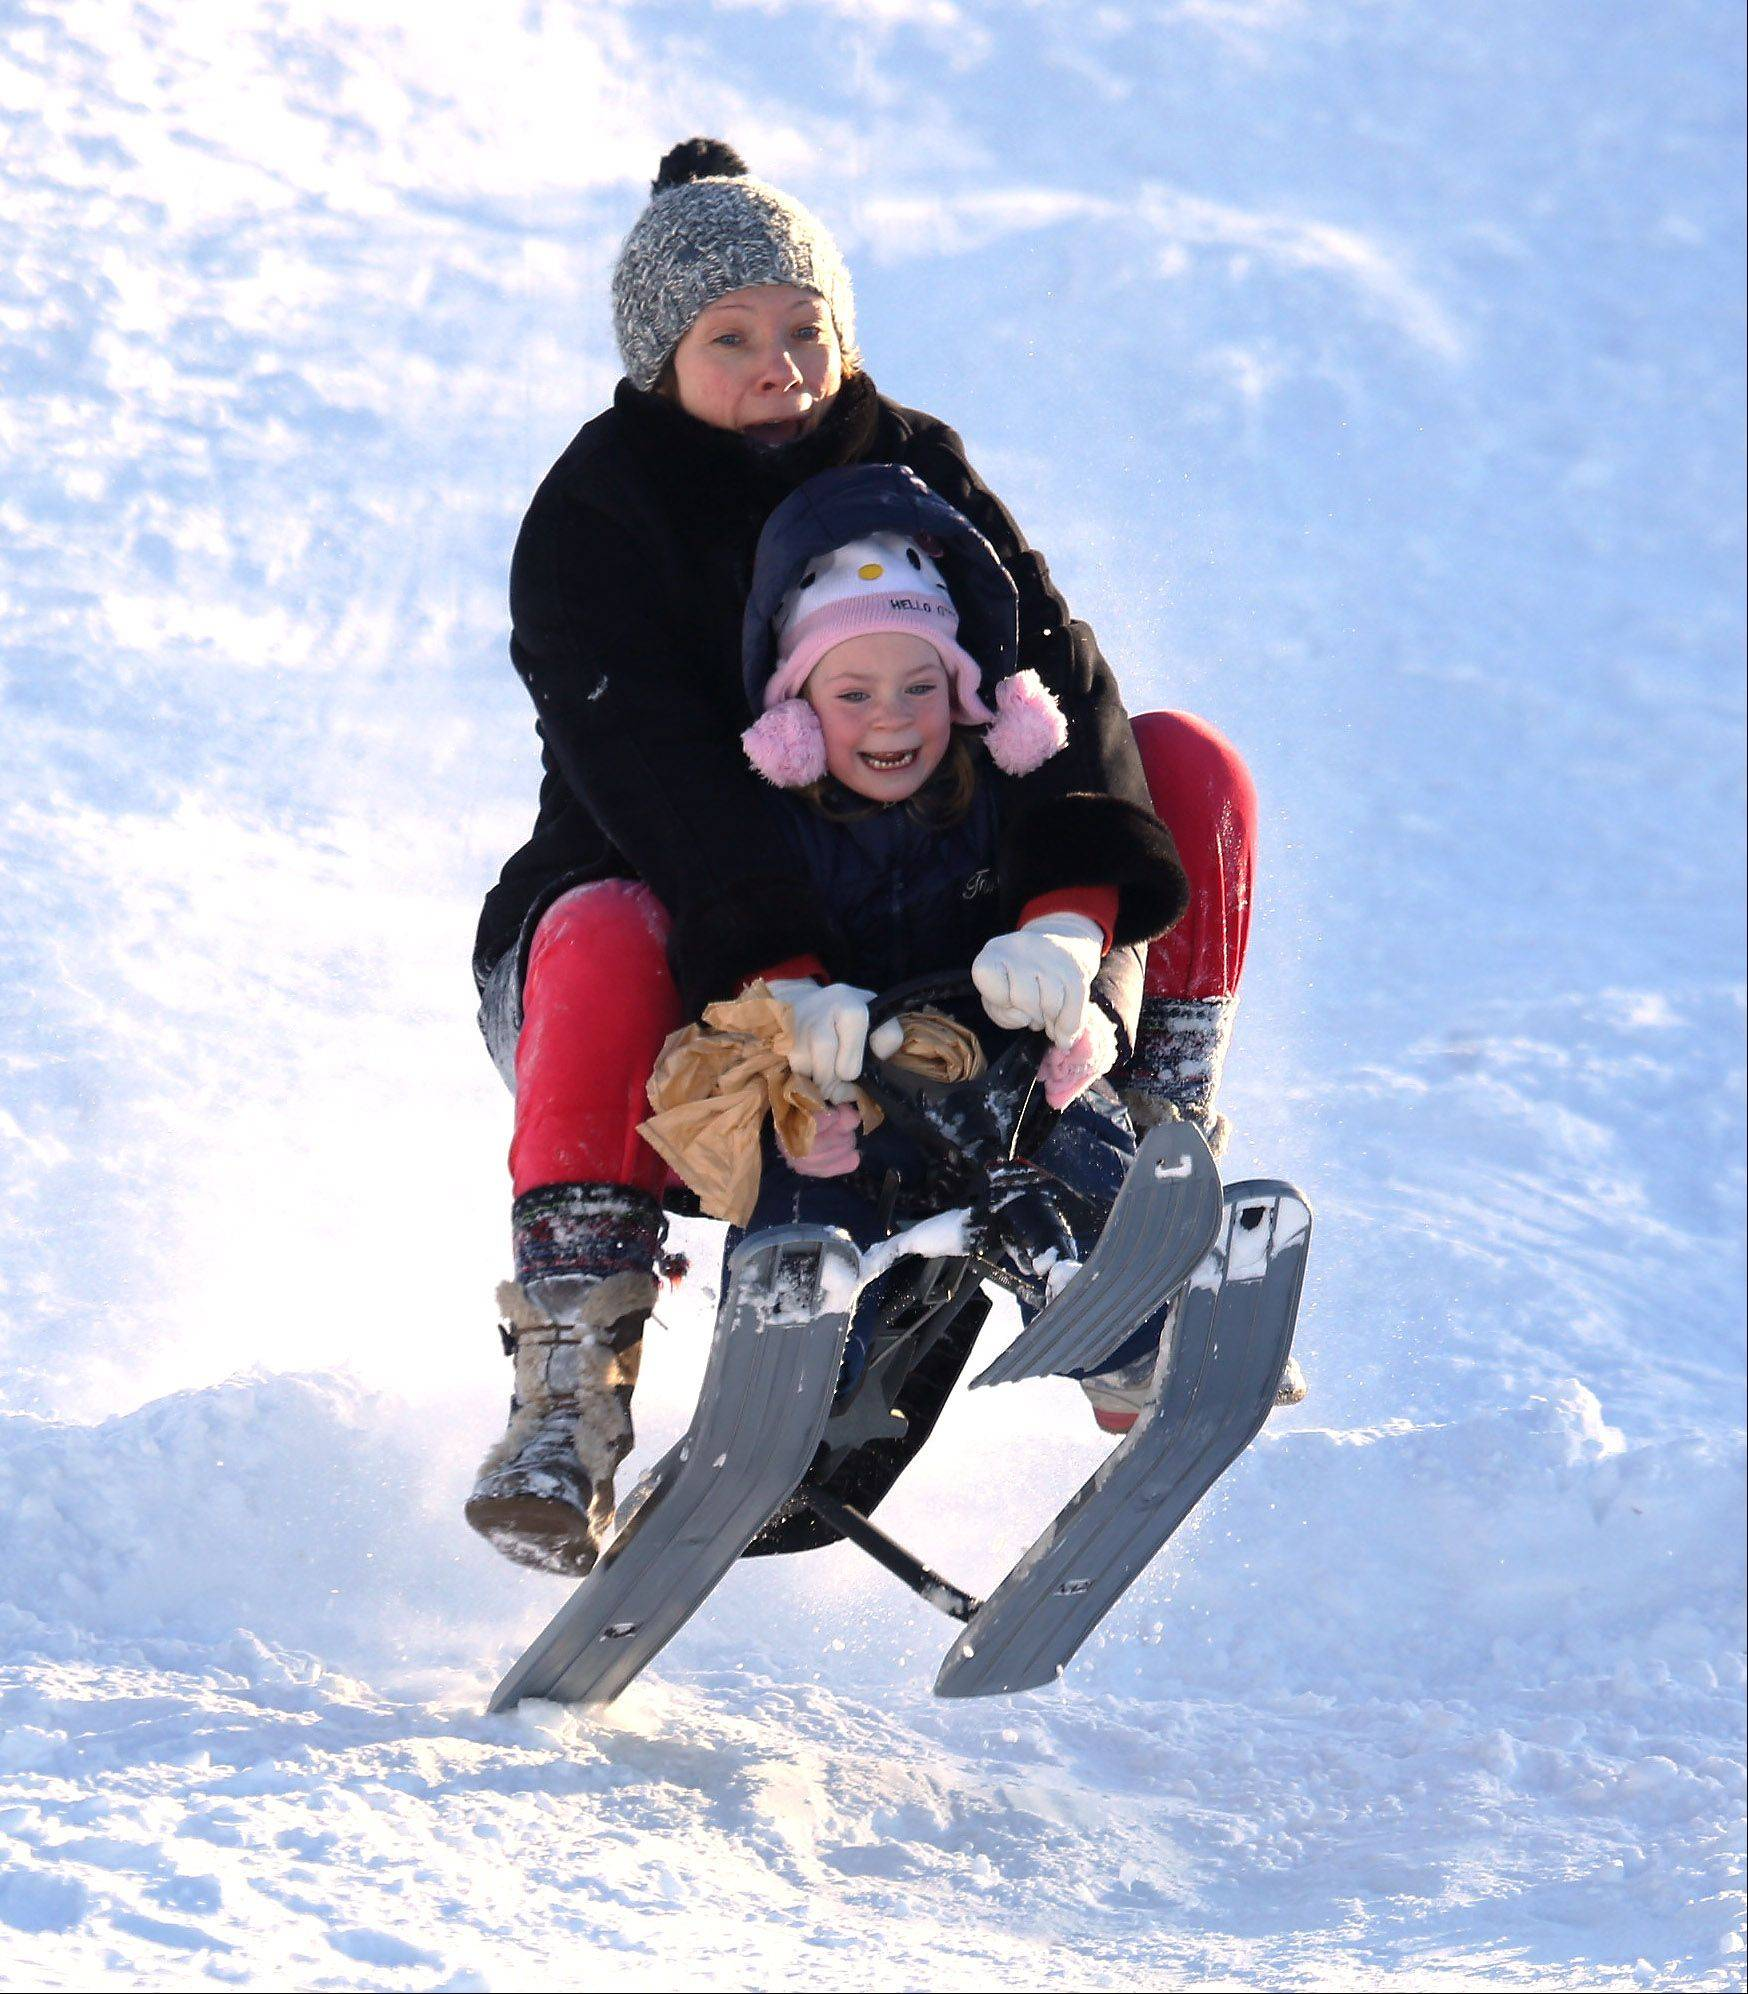 Vernon Hills residents Iriana Heyer and her daughter, Elsa, 5, sled down the hill at Century Park in Vernon Hills on Thursday after two days of falling snow produced almost 17 inches of snow. Nearly 50 people took advantage of the thick, fresh snow to enjoy the winter wonderland at the park.